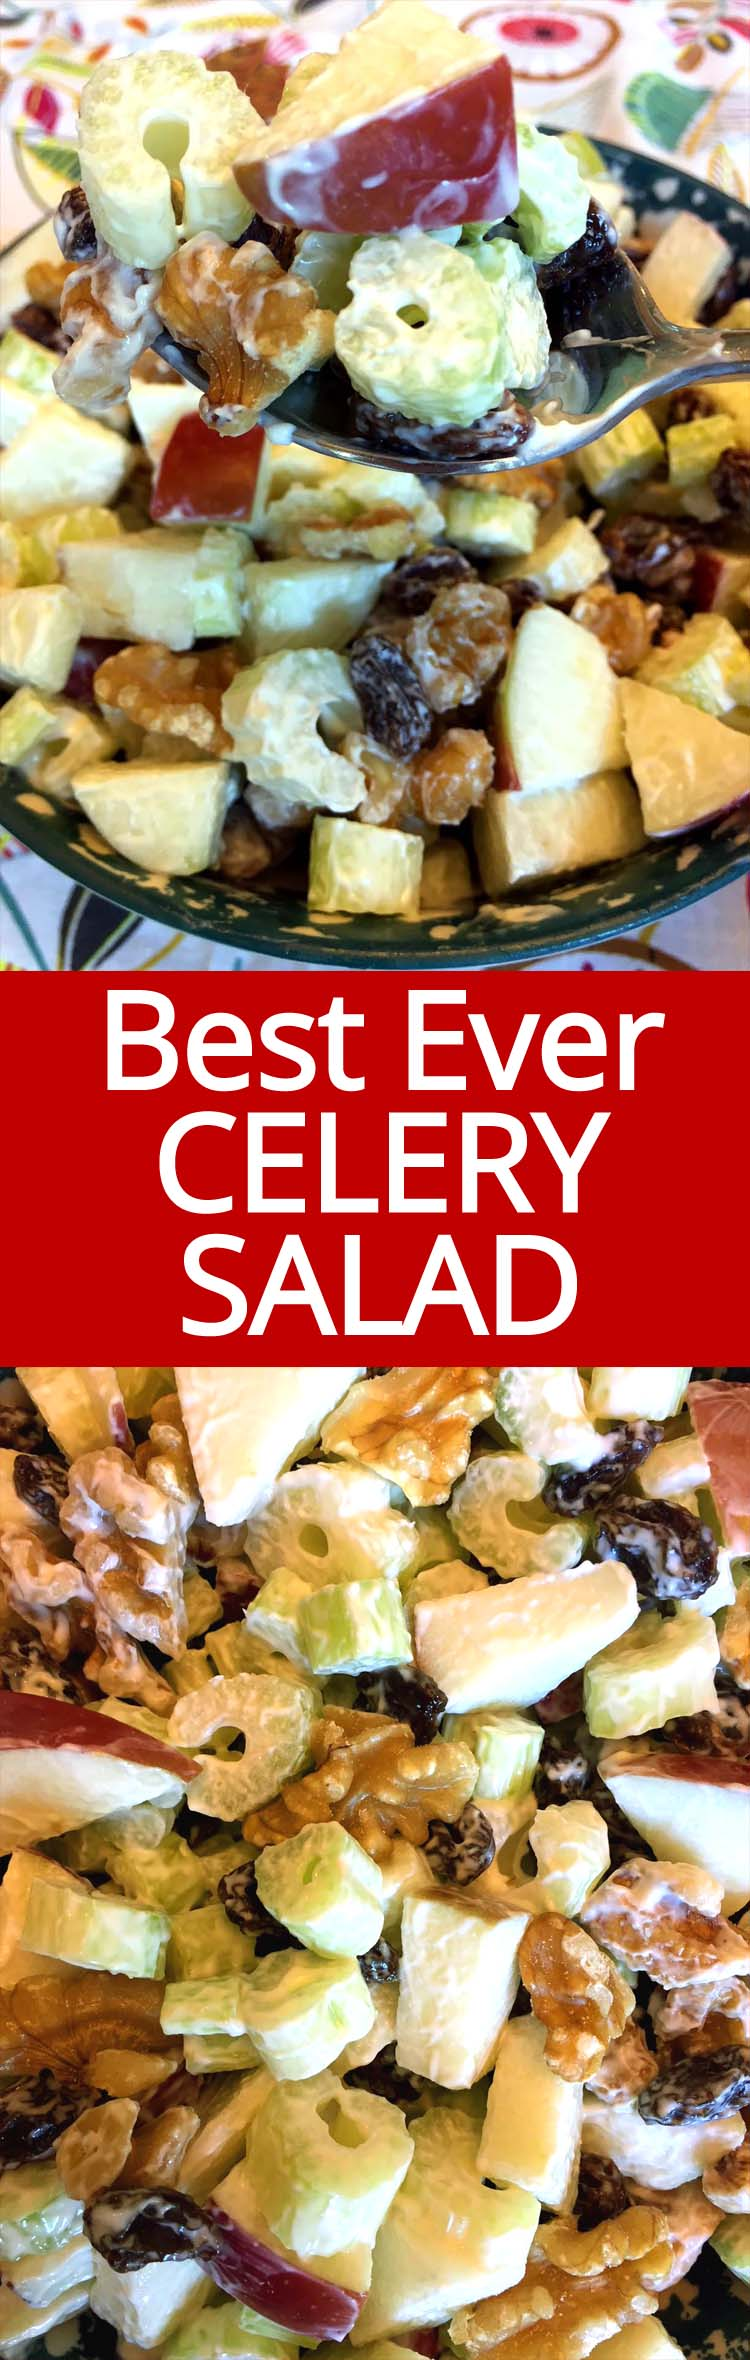 This easy Waldorf salad is my most favorite celery salad ever! Super easy to make, simple is always best! Amazing!